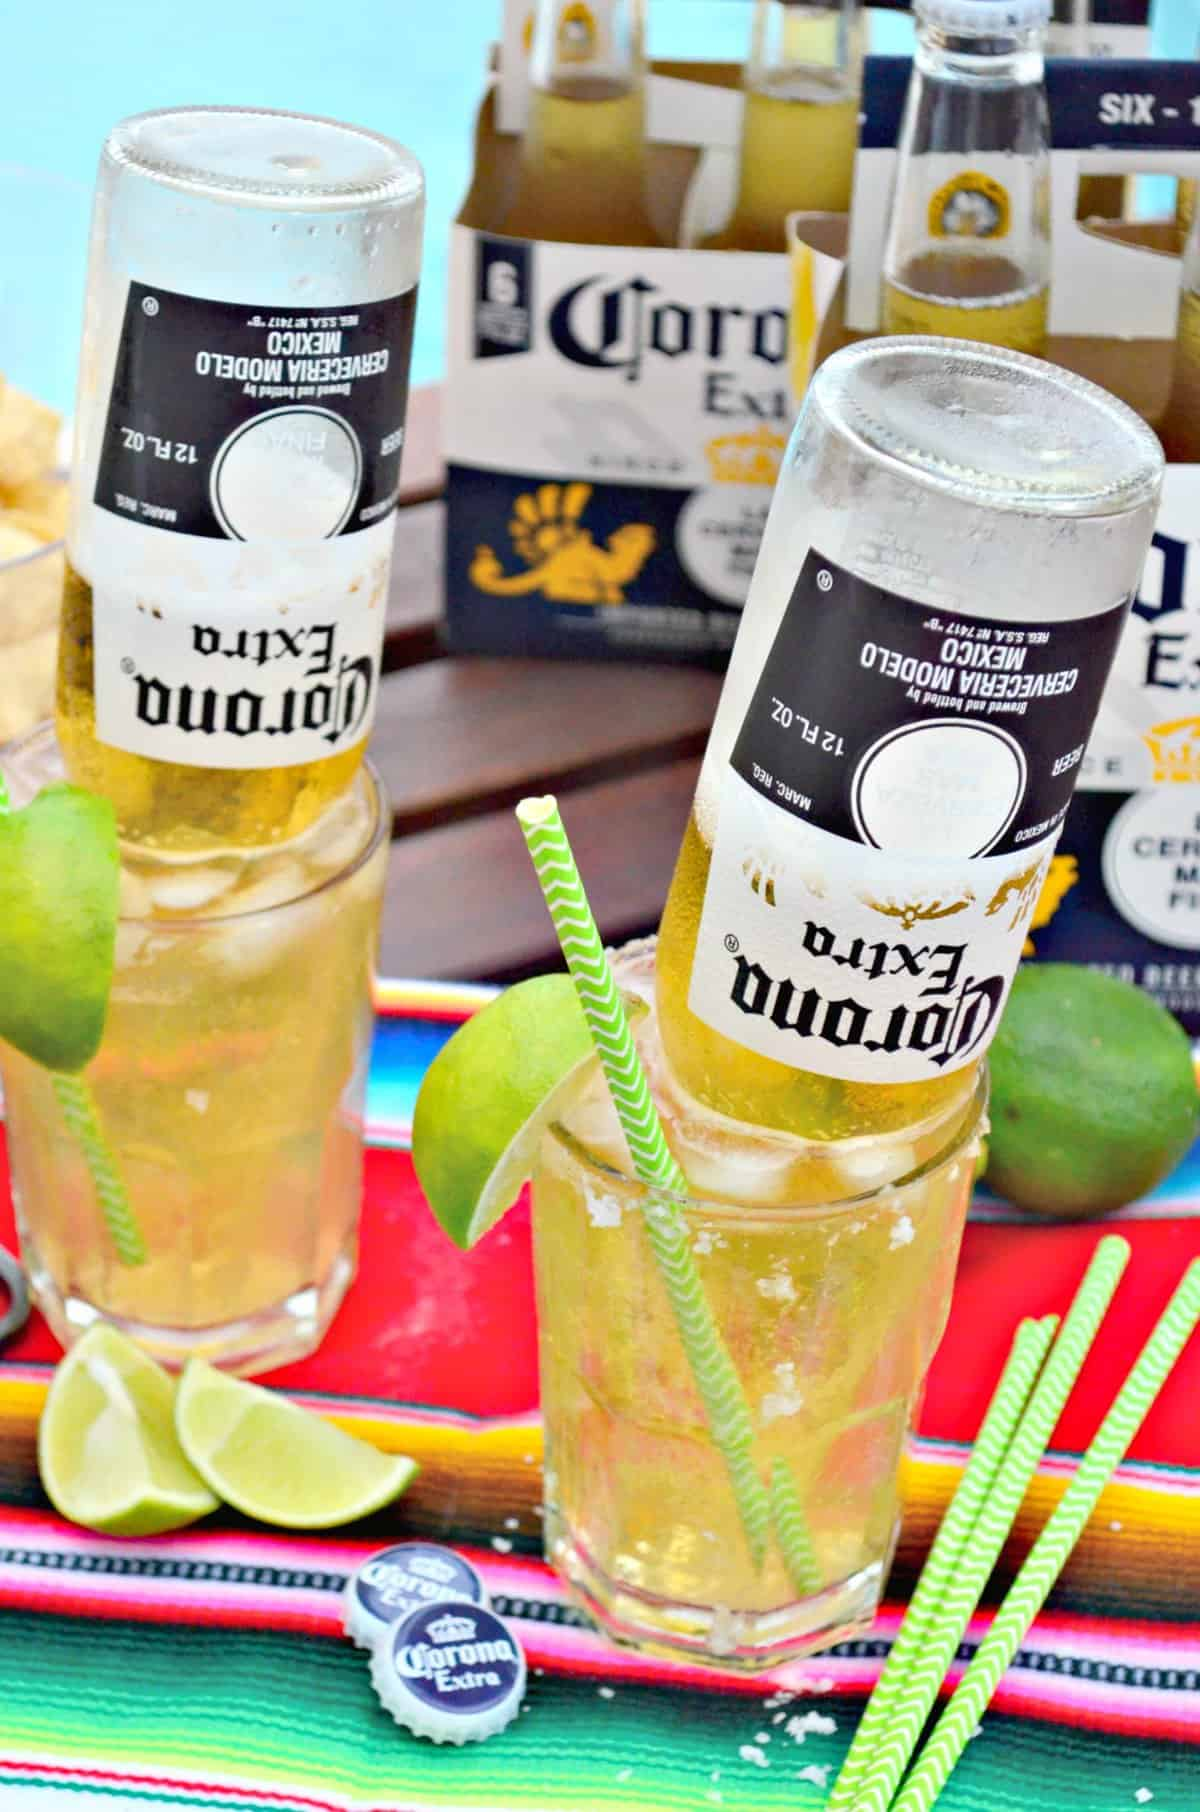 two glasses of light yellow iced liquid with upsidedown corona bottles in them with lime wedges on rim.